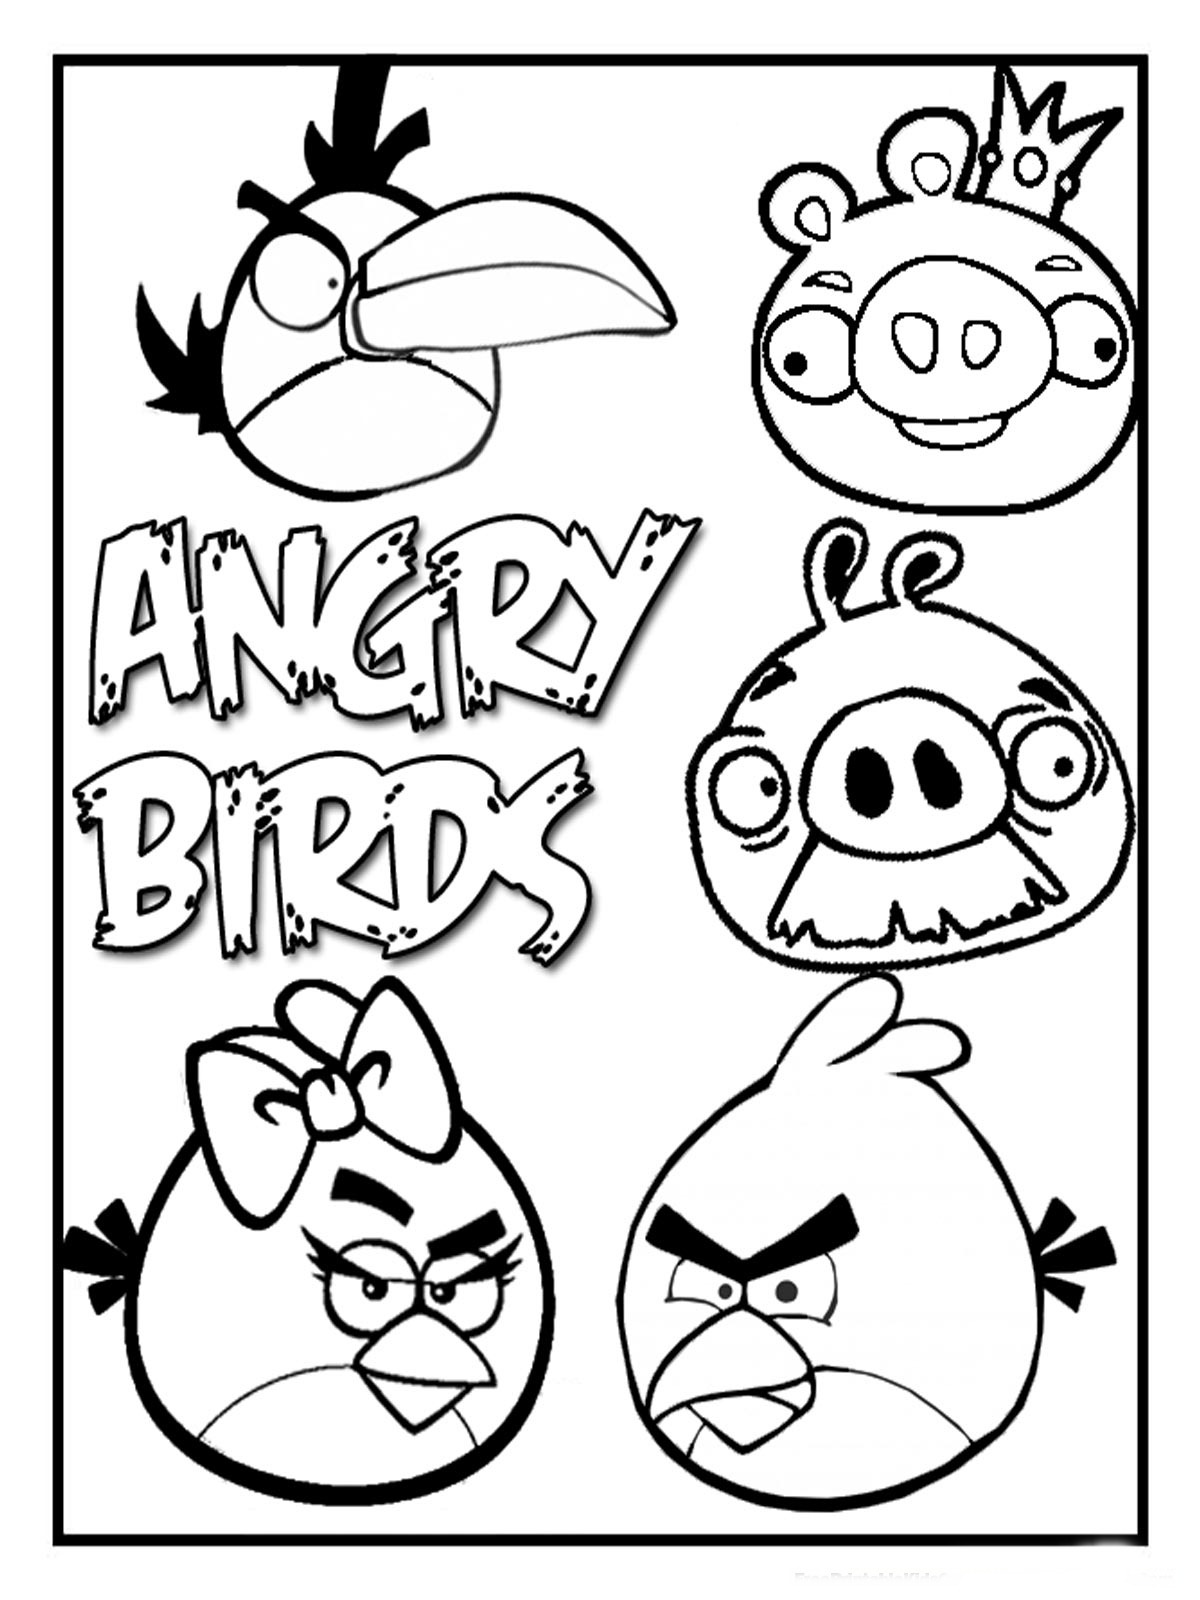 angry birds pictures to color and print angry birds kids coloring pages free printable kids and to birds color pictures angry print